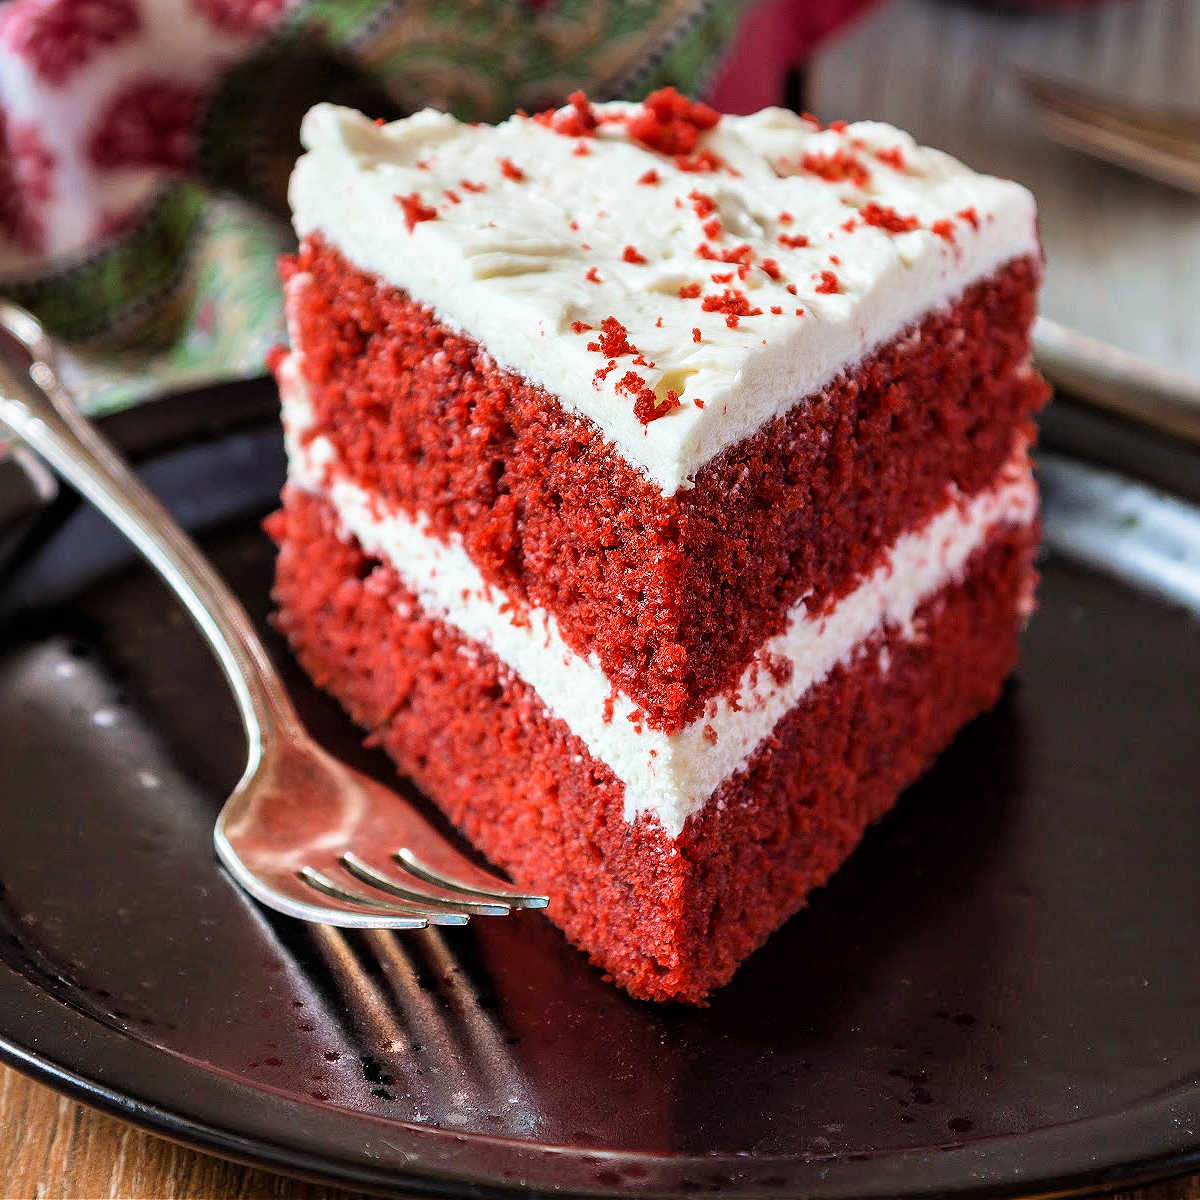 A slice of red velvet cake iced with white icing on a black plate.